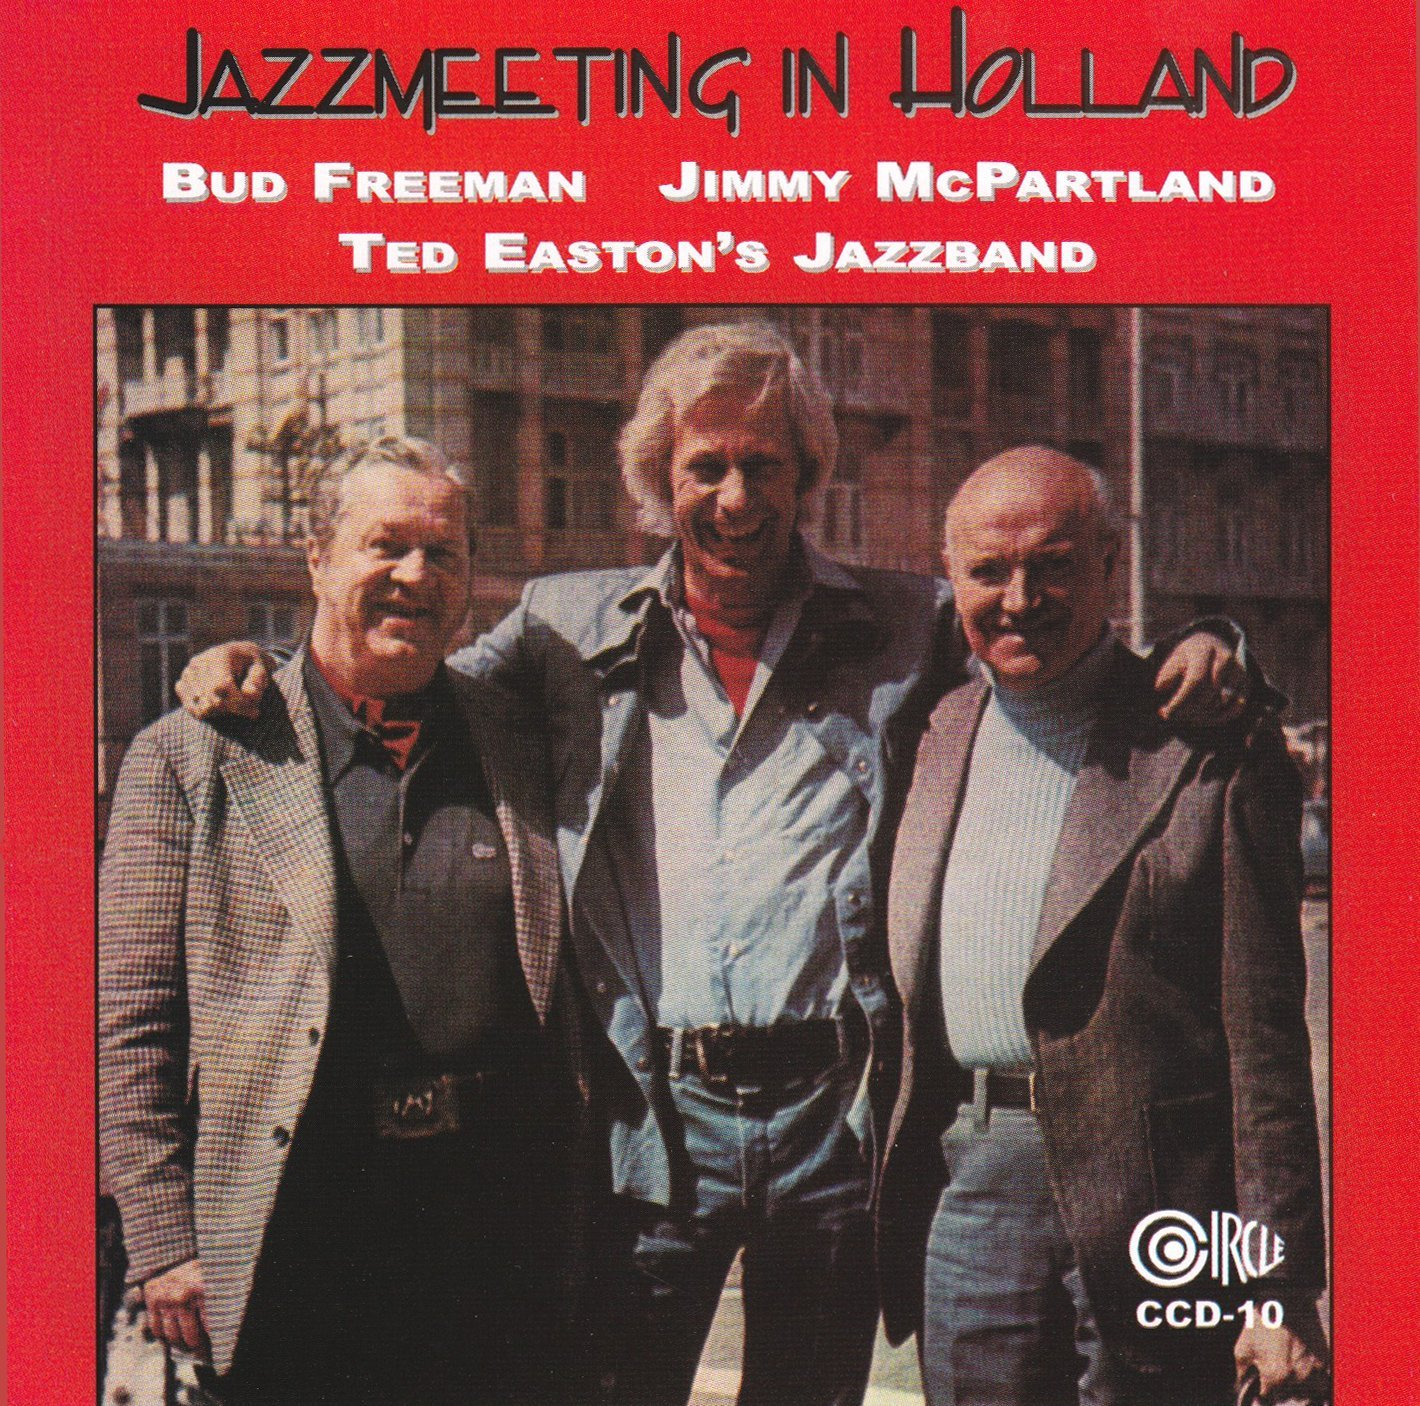 Jazzmeeting in Holland by Circle